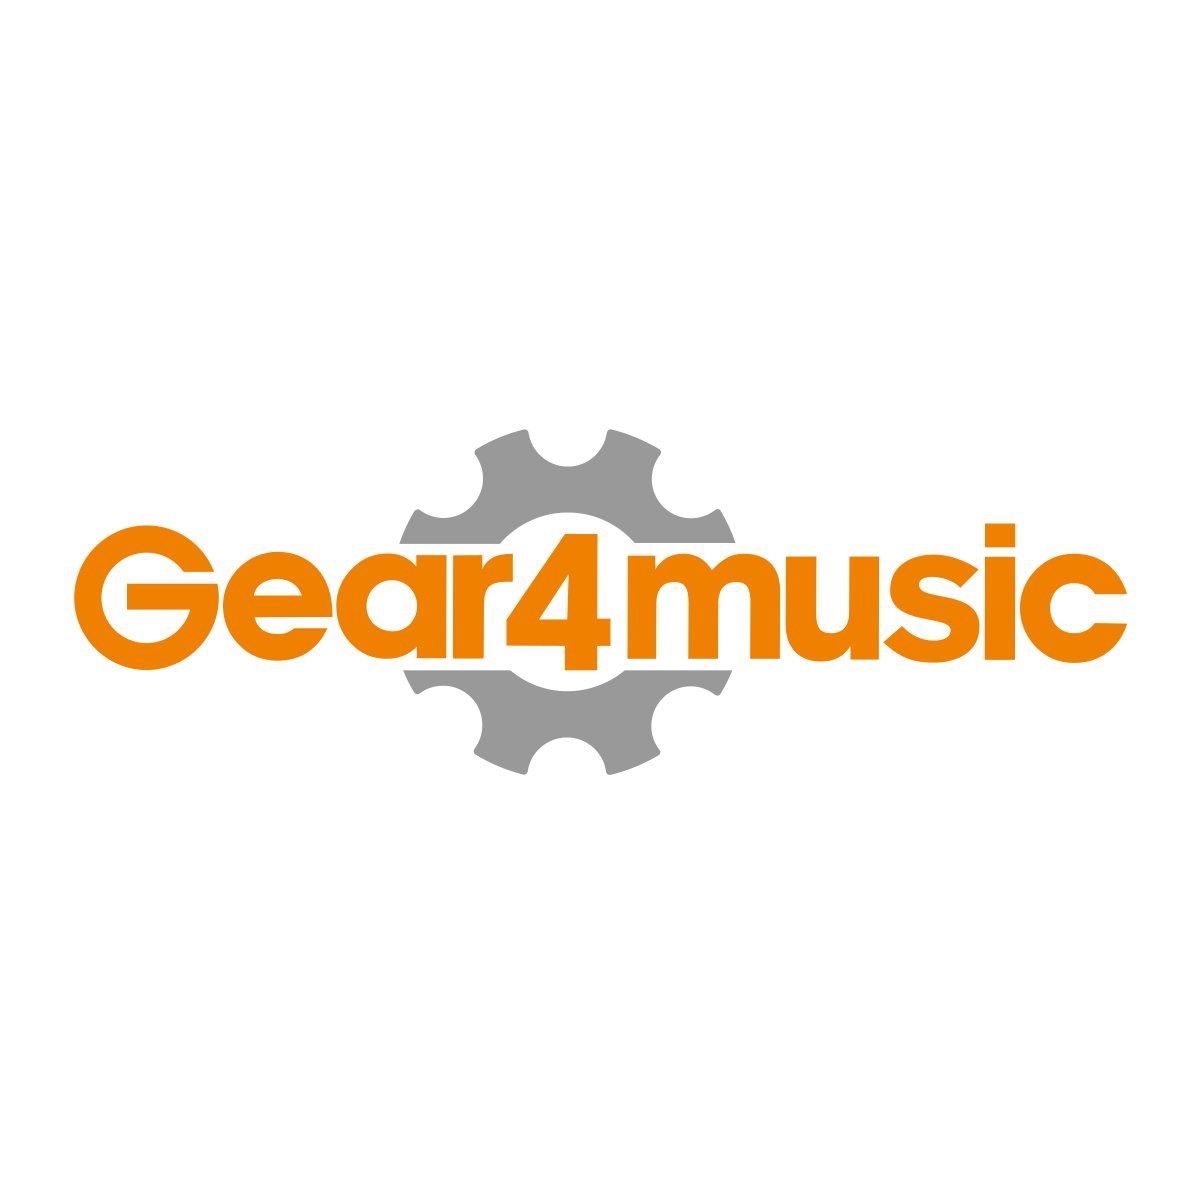 Taburete de Piano Ajustable de Gear4music - Blanco